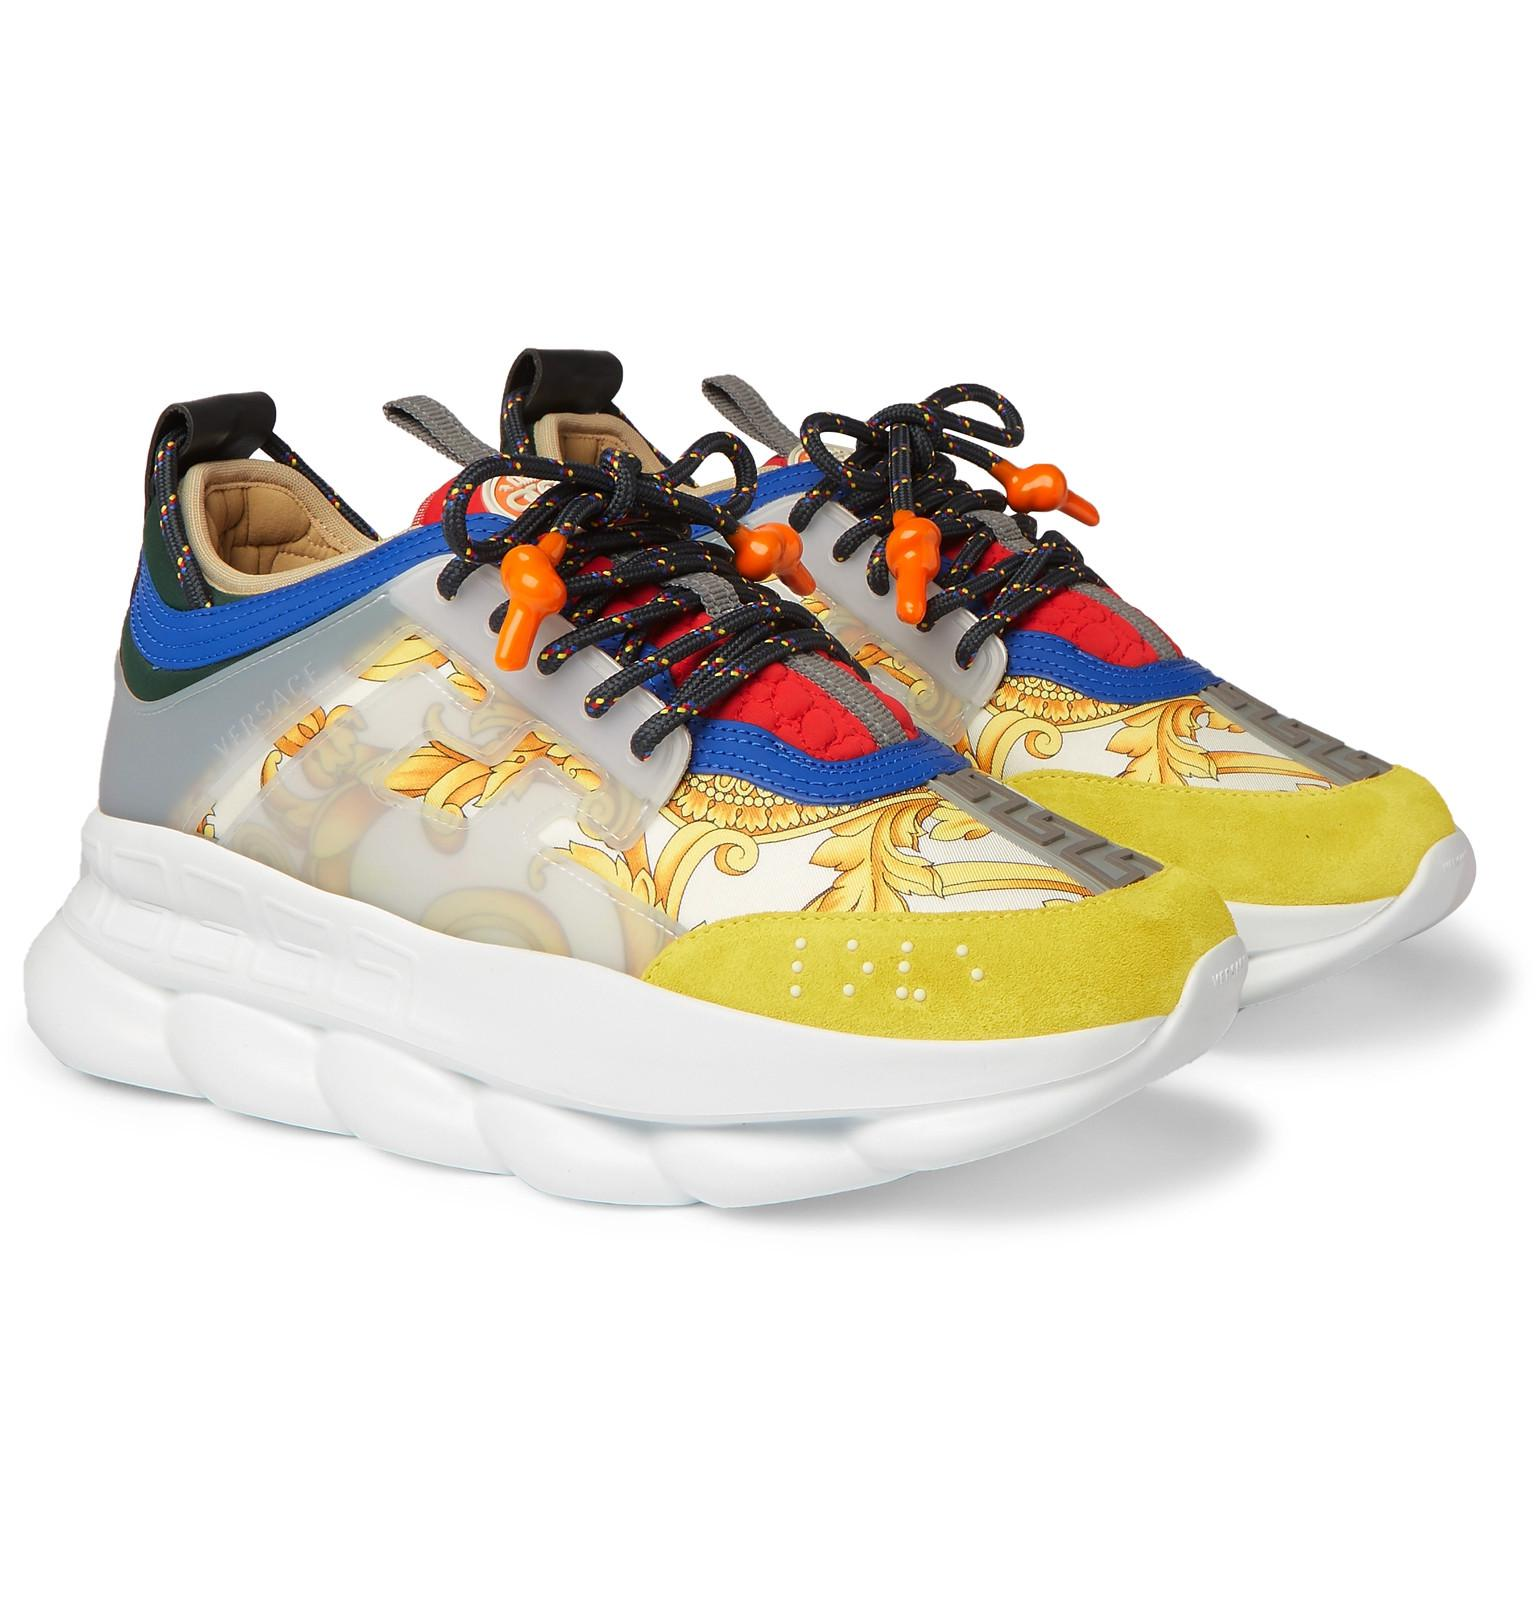 Versace Rubber Chain Reaction Panelled